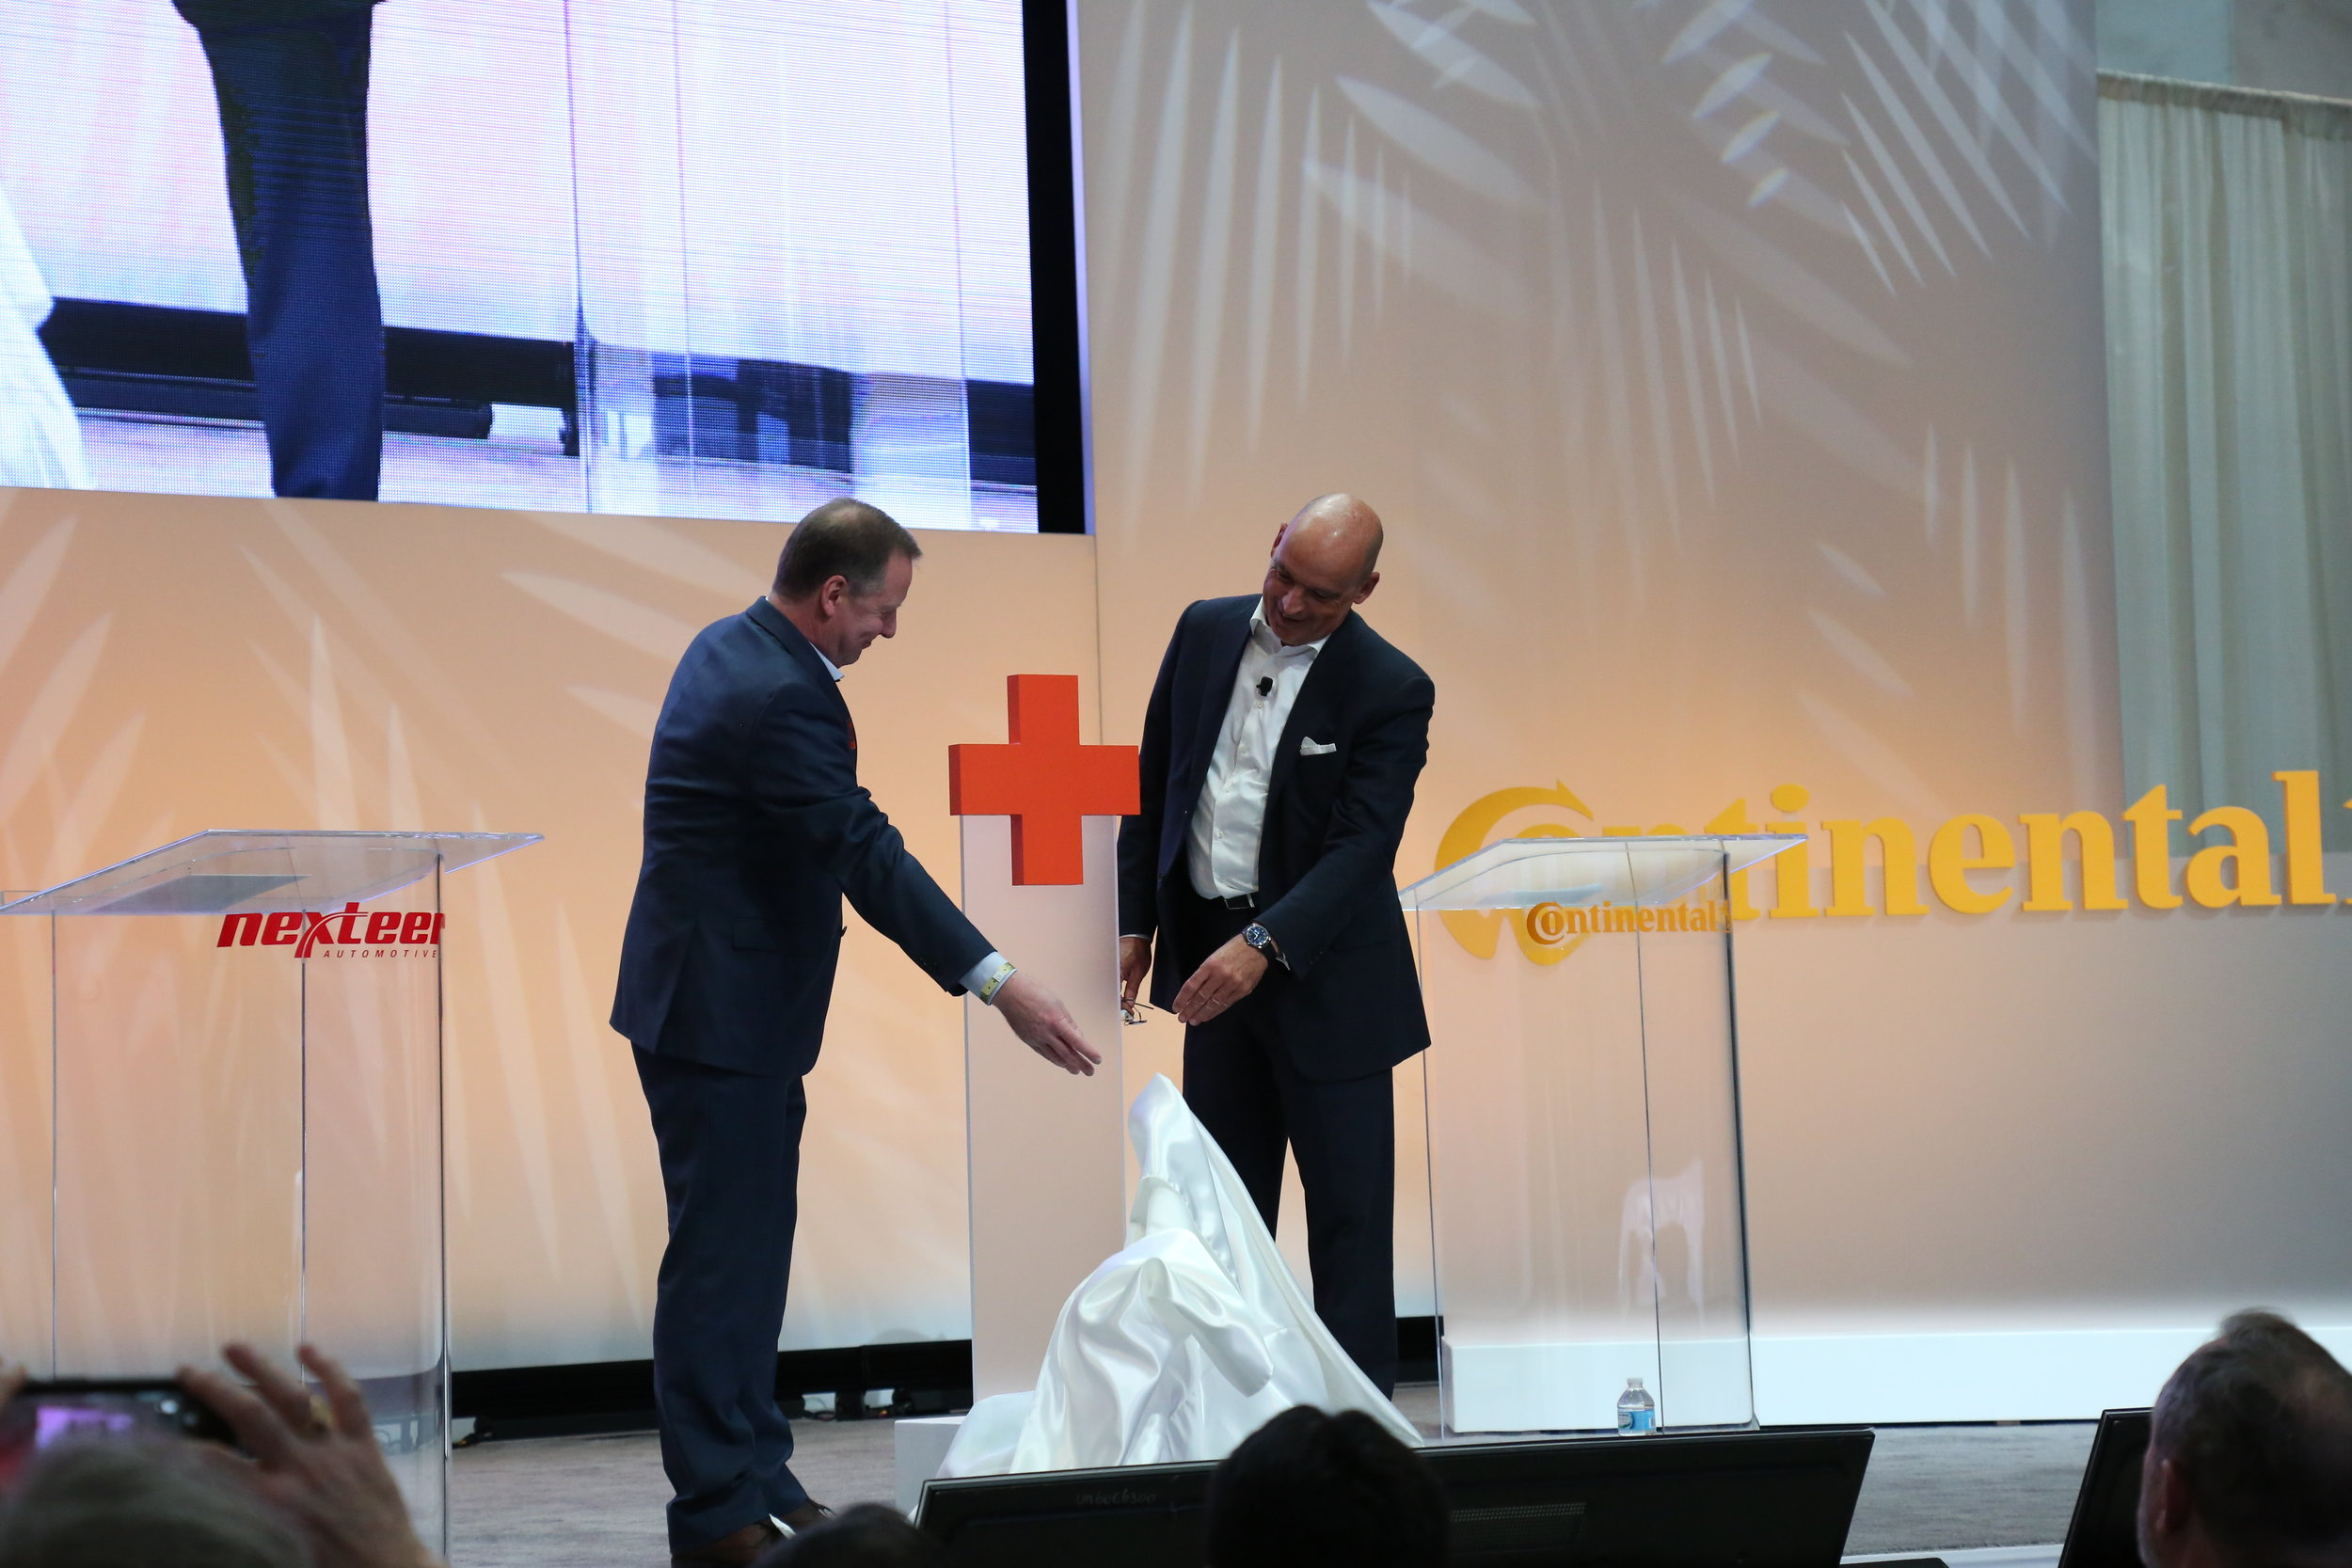 Our team produced the large acrylic branded properties for the Nexteer + Continental press conference on a tight timeline and coordinated stage logistics with the NAIAS team.